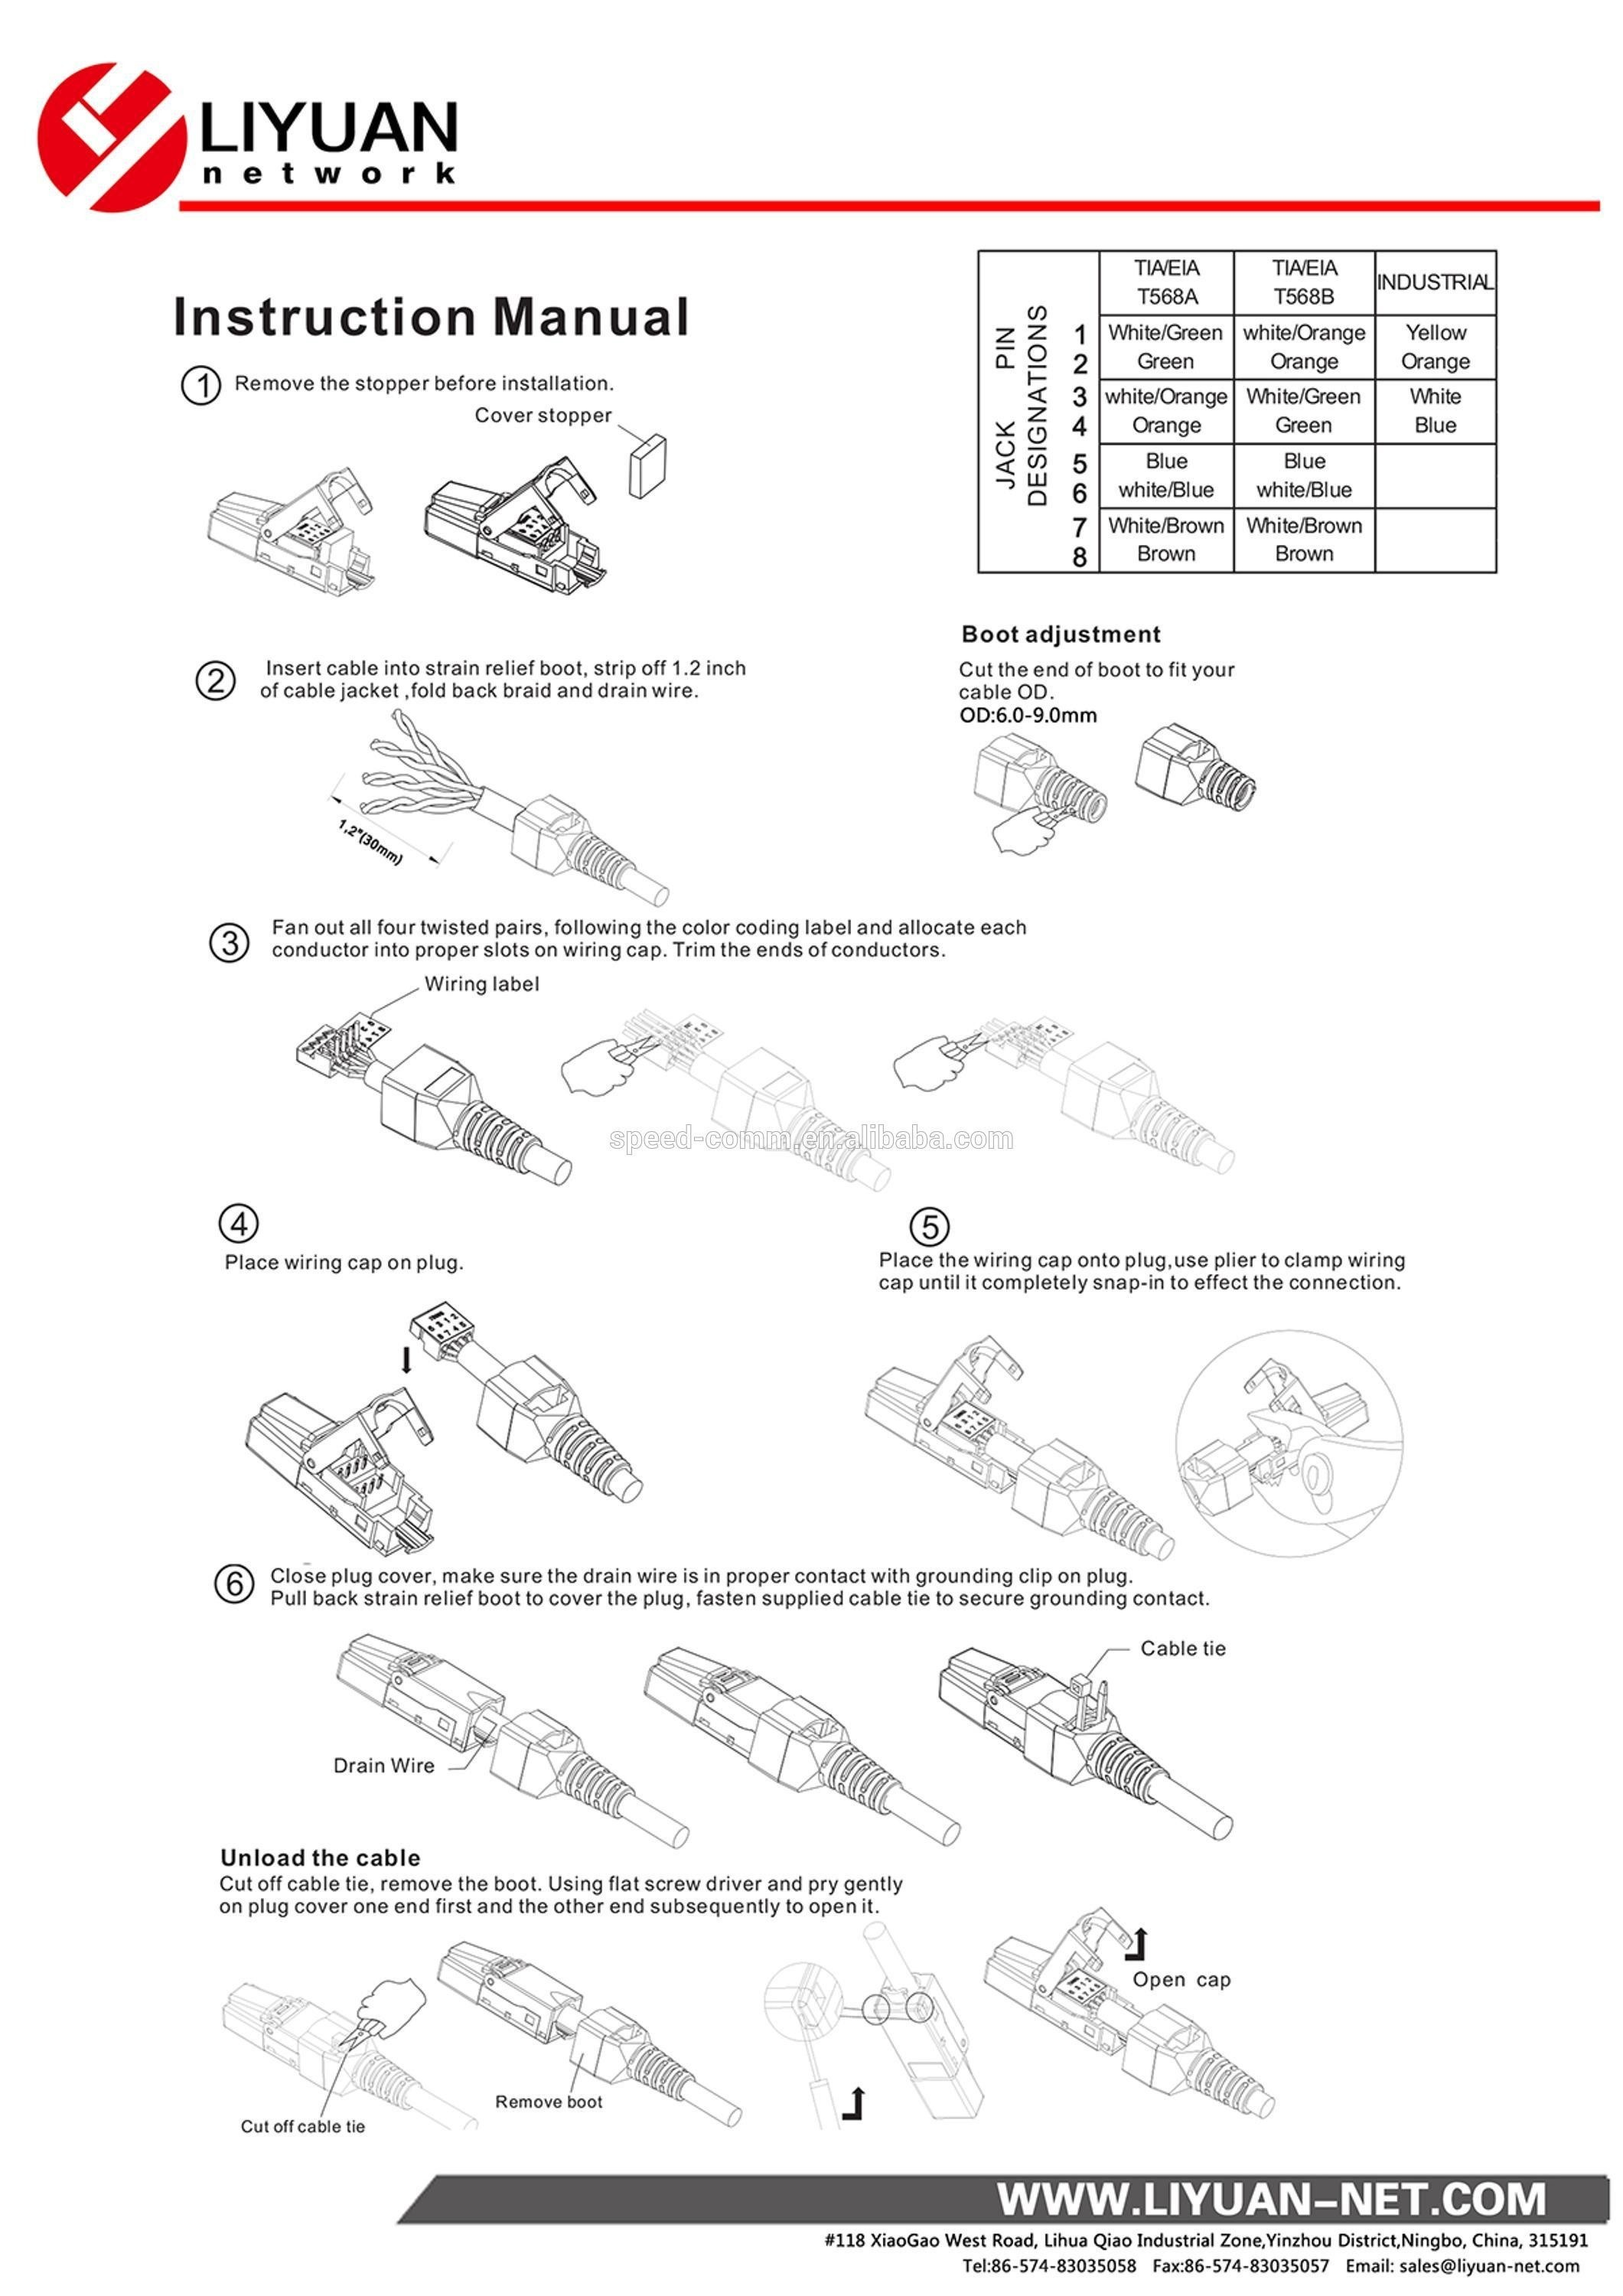 Rj45 Jack Wiring Diagram Cat5e Wiring Jack Diagram Of Rj45 Jack Wiring Diagram Rj45 Wire Diagram New Rj45 Cable Connection Platinum tools R Bg Rj45